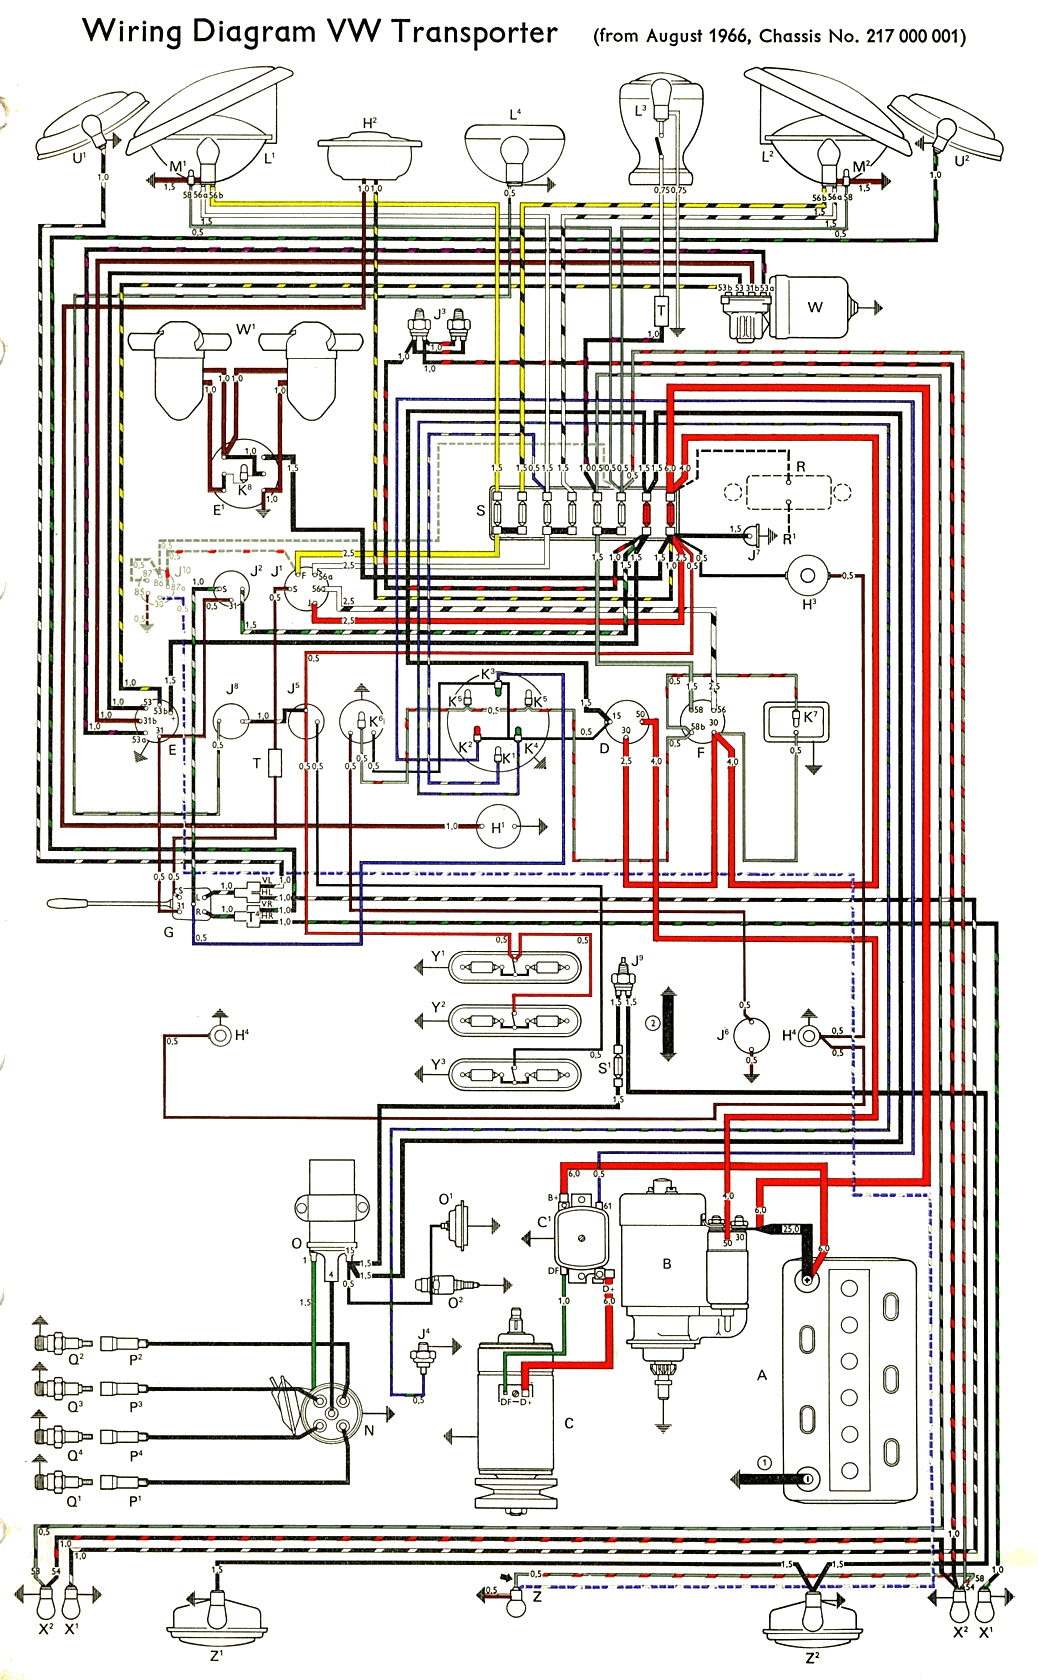 hight resolution of thesamba com type 2 wiring diagrams 1960 vw bus fuse box